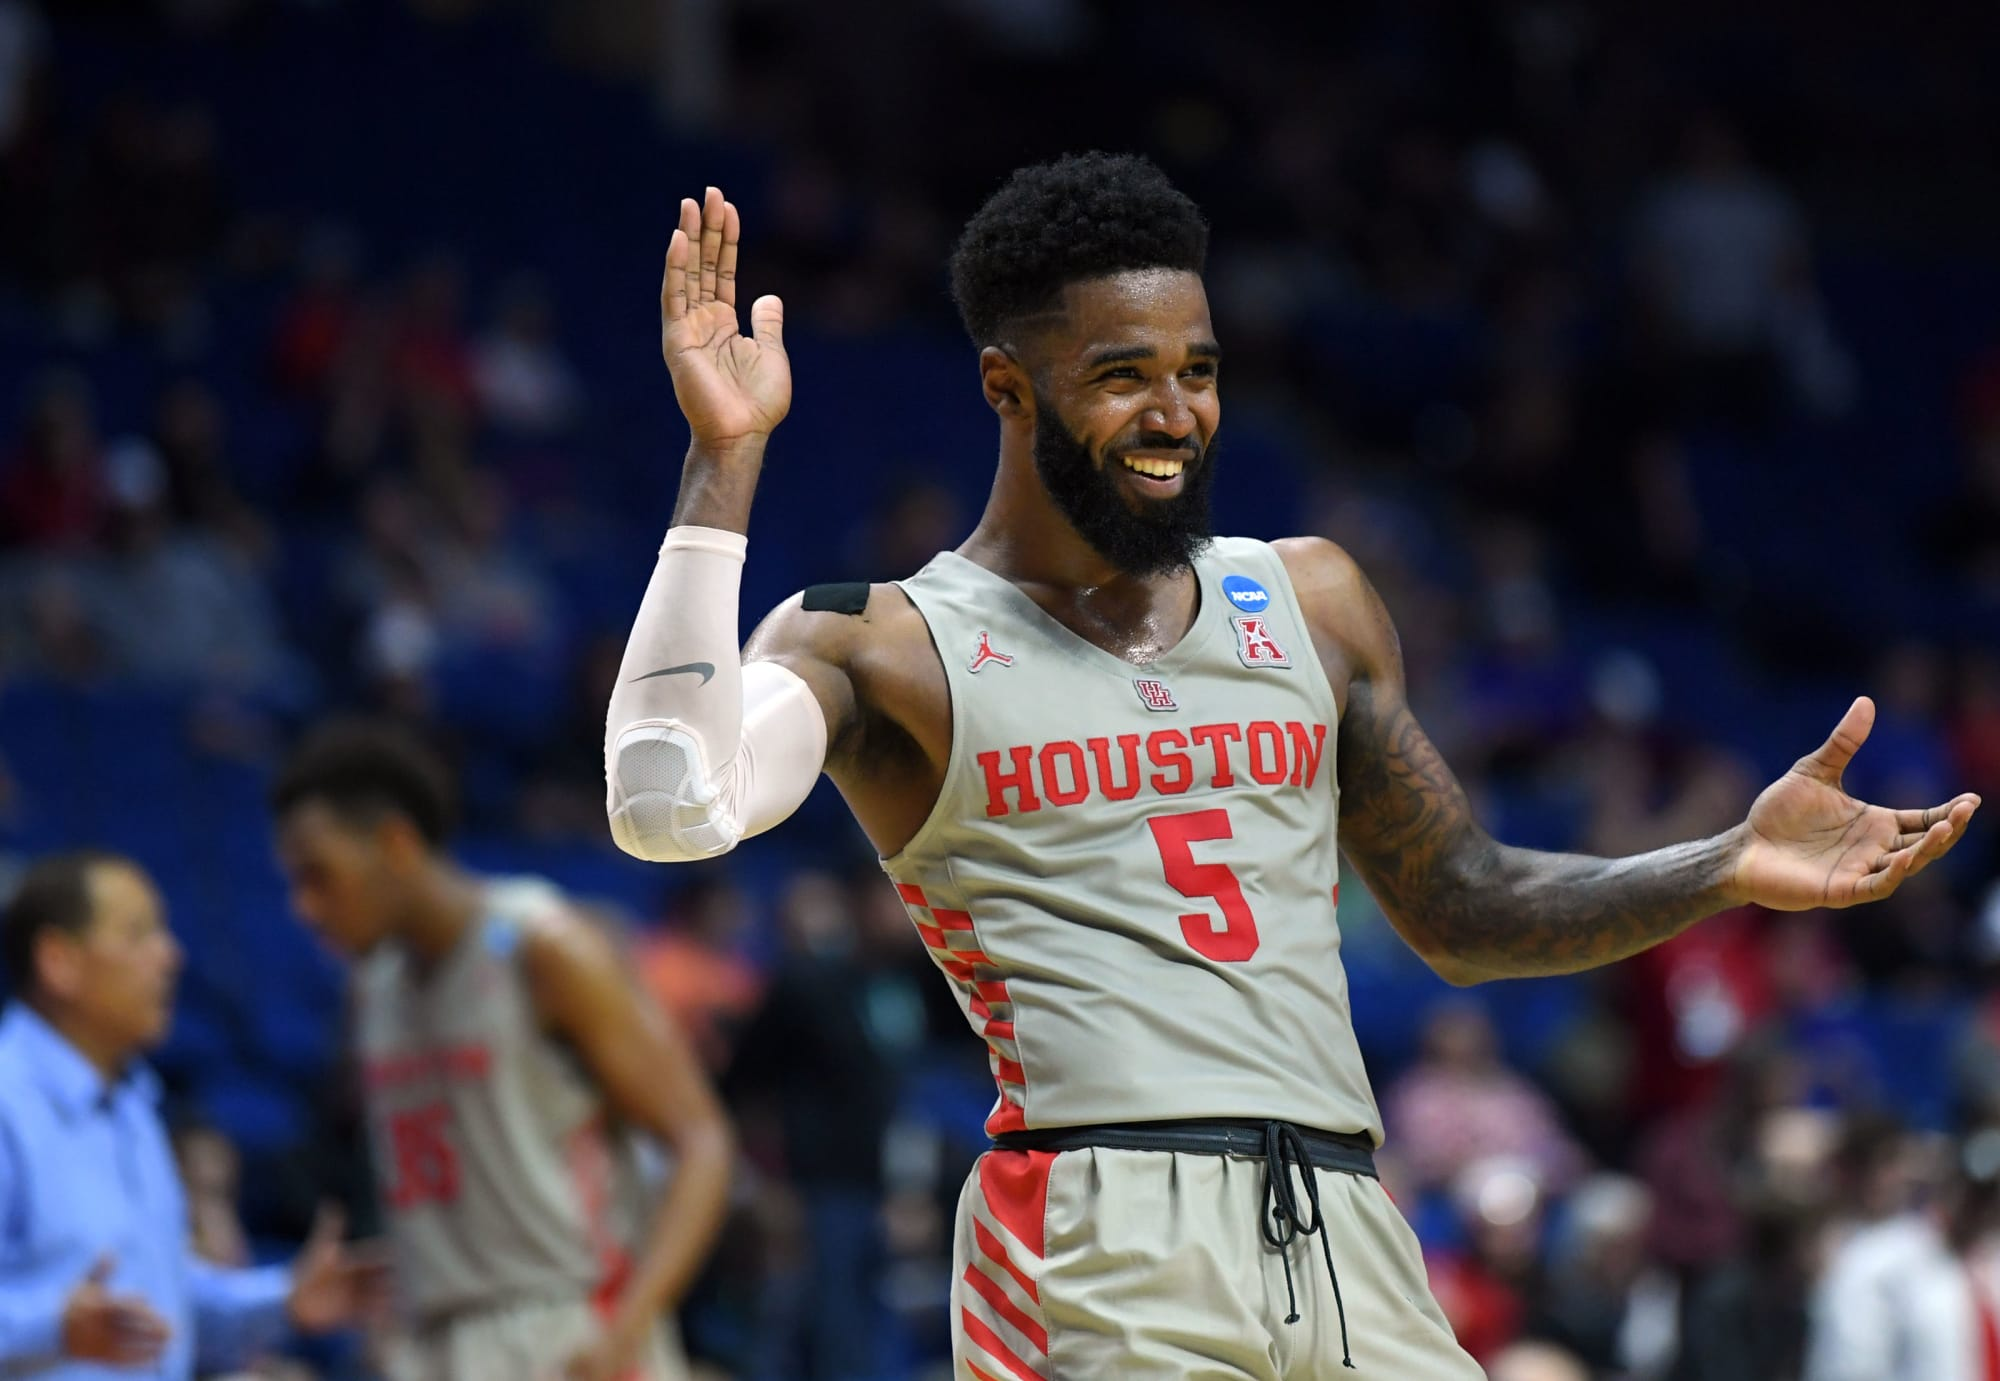 Houston Cougars Basketball: Review of historic 2018-19 campaign